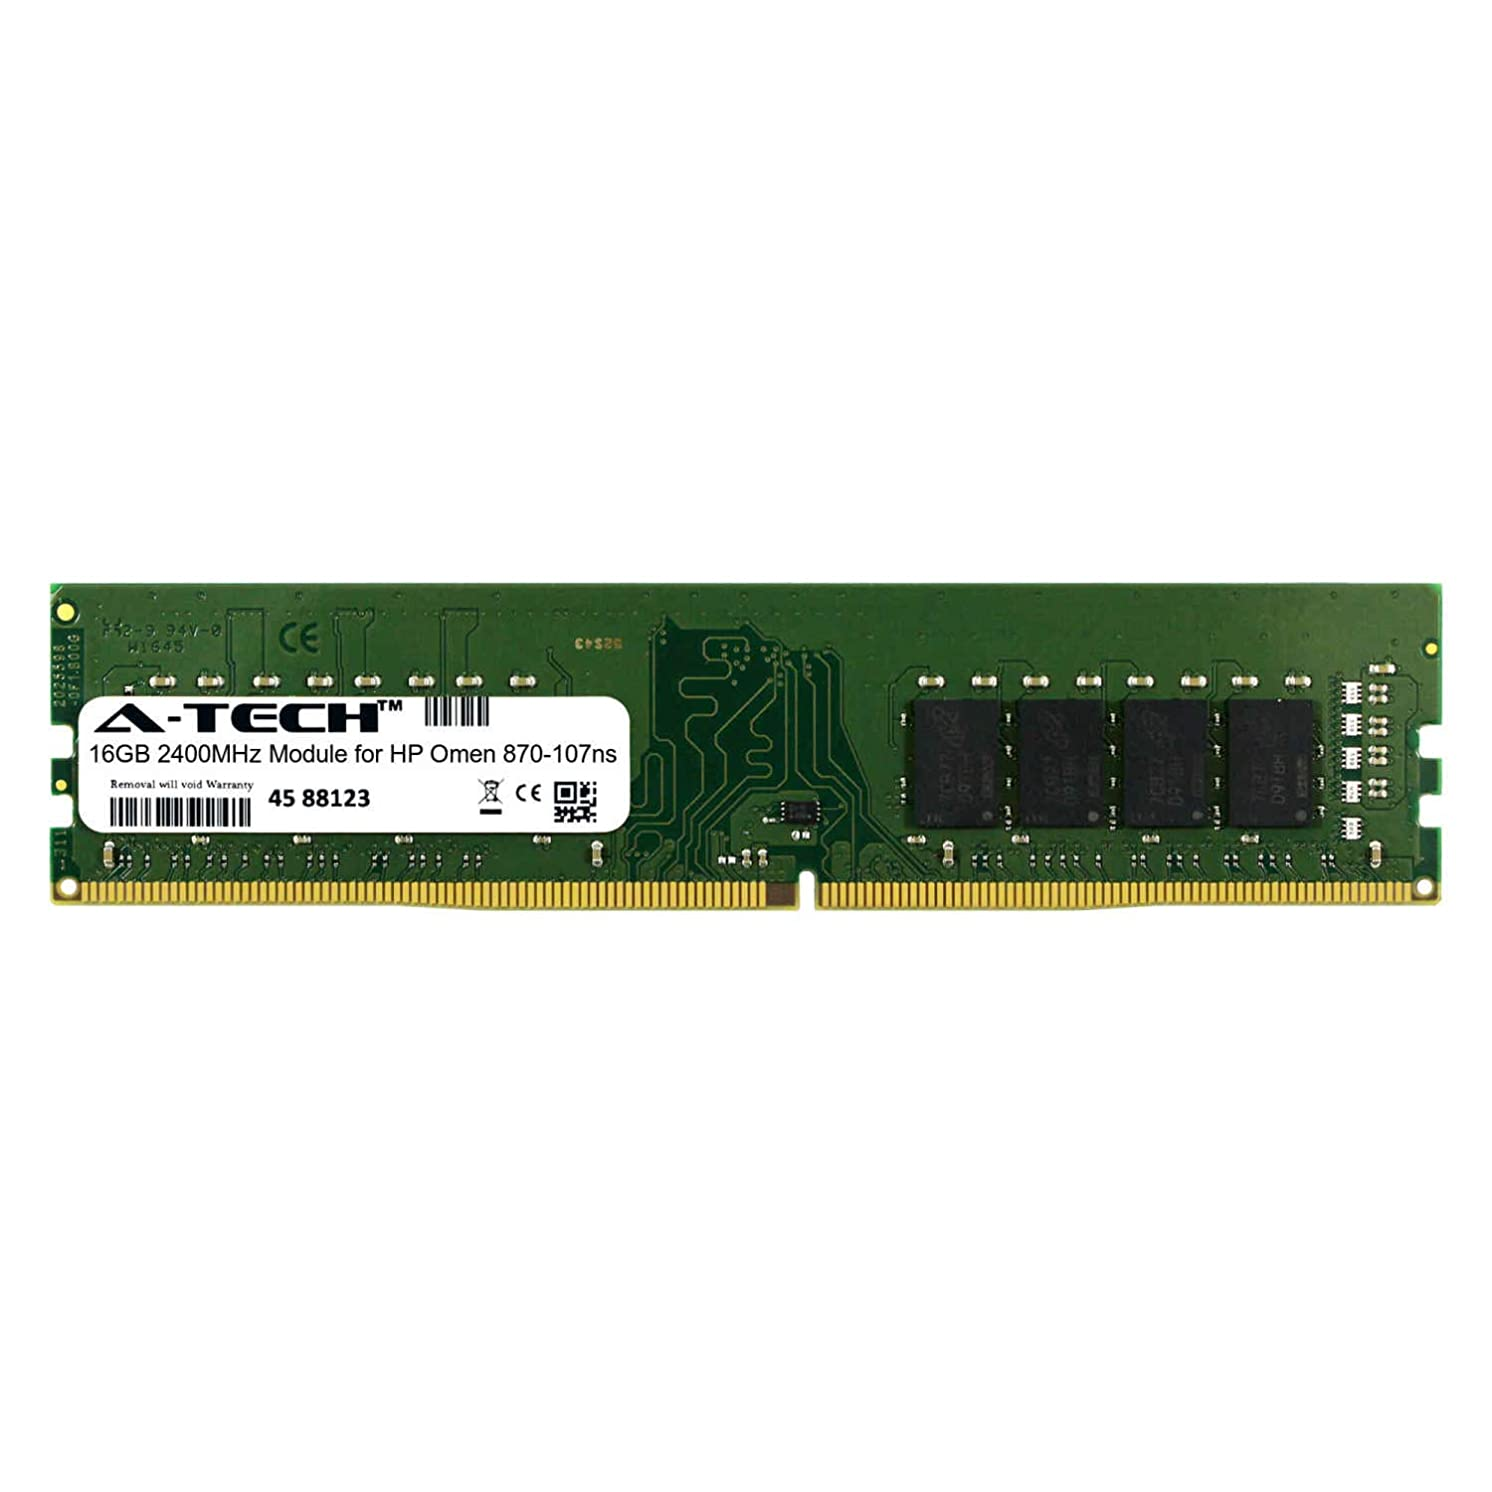 A-Tech 16GB Module for HP Omen 870-107ns Desktop & Workstation Motherboard Compatible DDR4 2400Mhz Memory Ram (ATMS282107A25822X1)